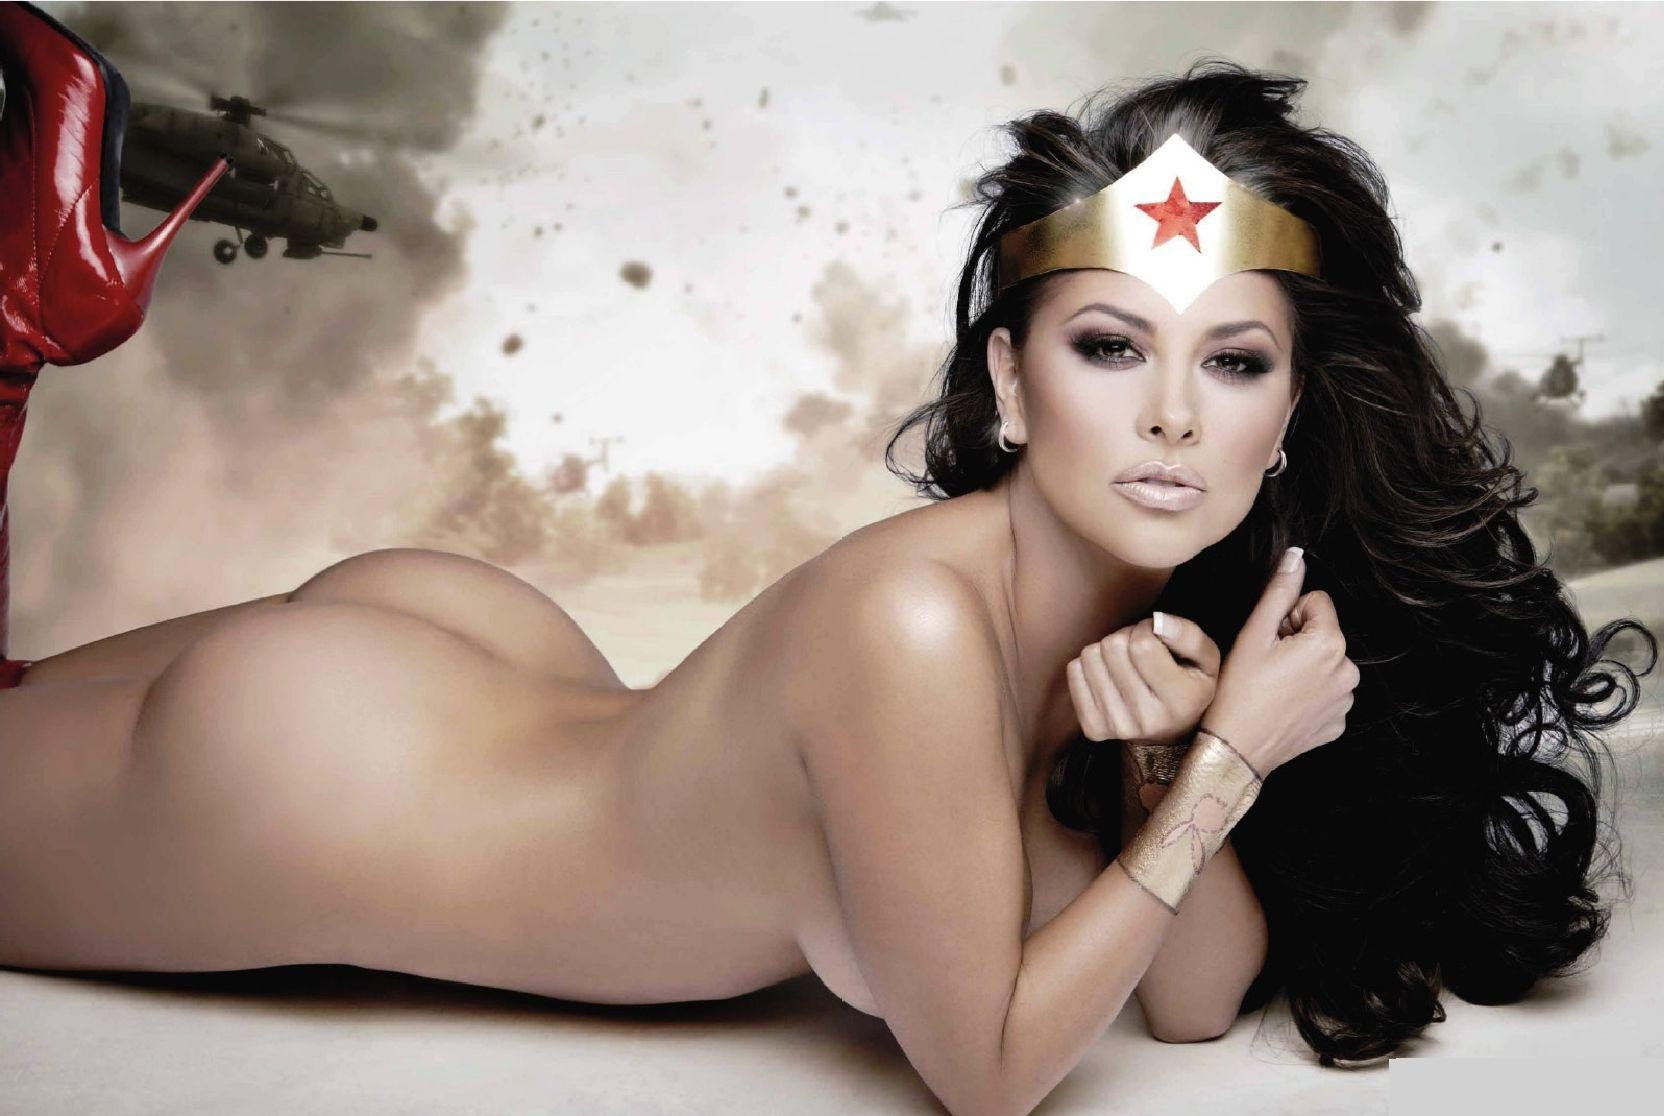 Fotos desnudas olf wonder woman